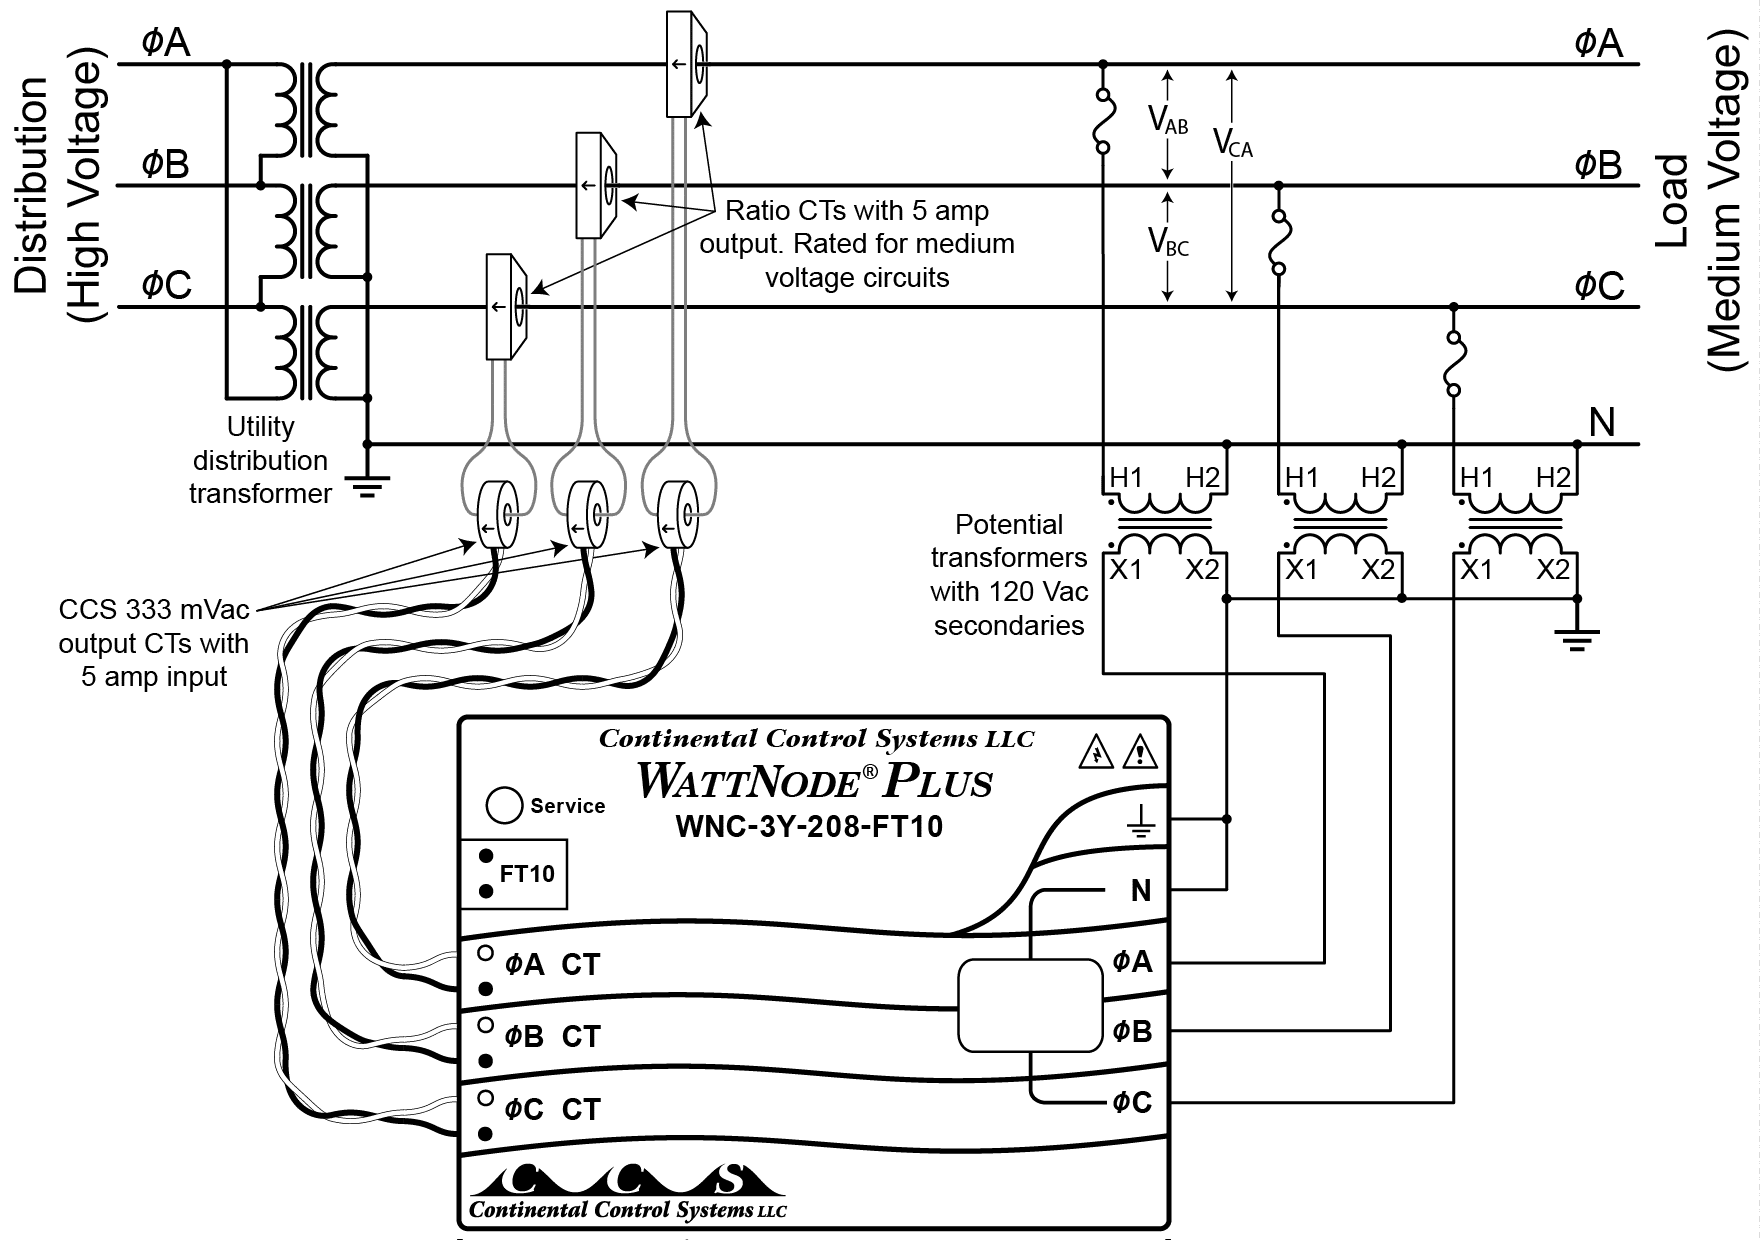 hvac potential relay wiring diagram using potential transformers – continental control systems ... #3